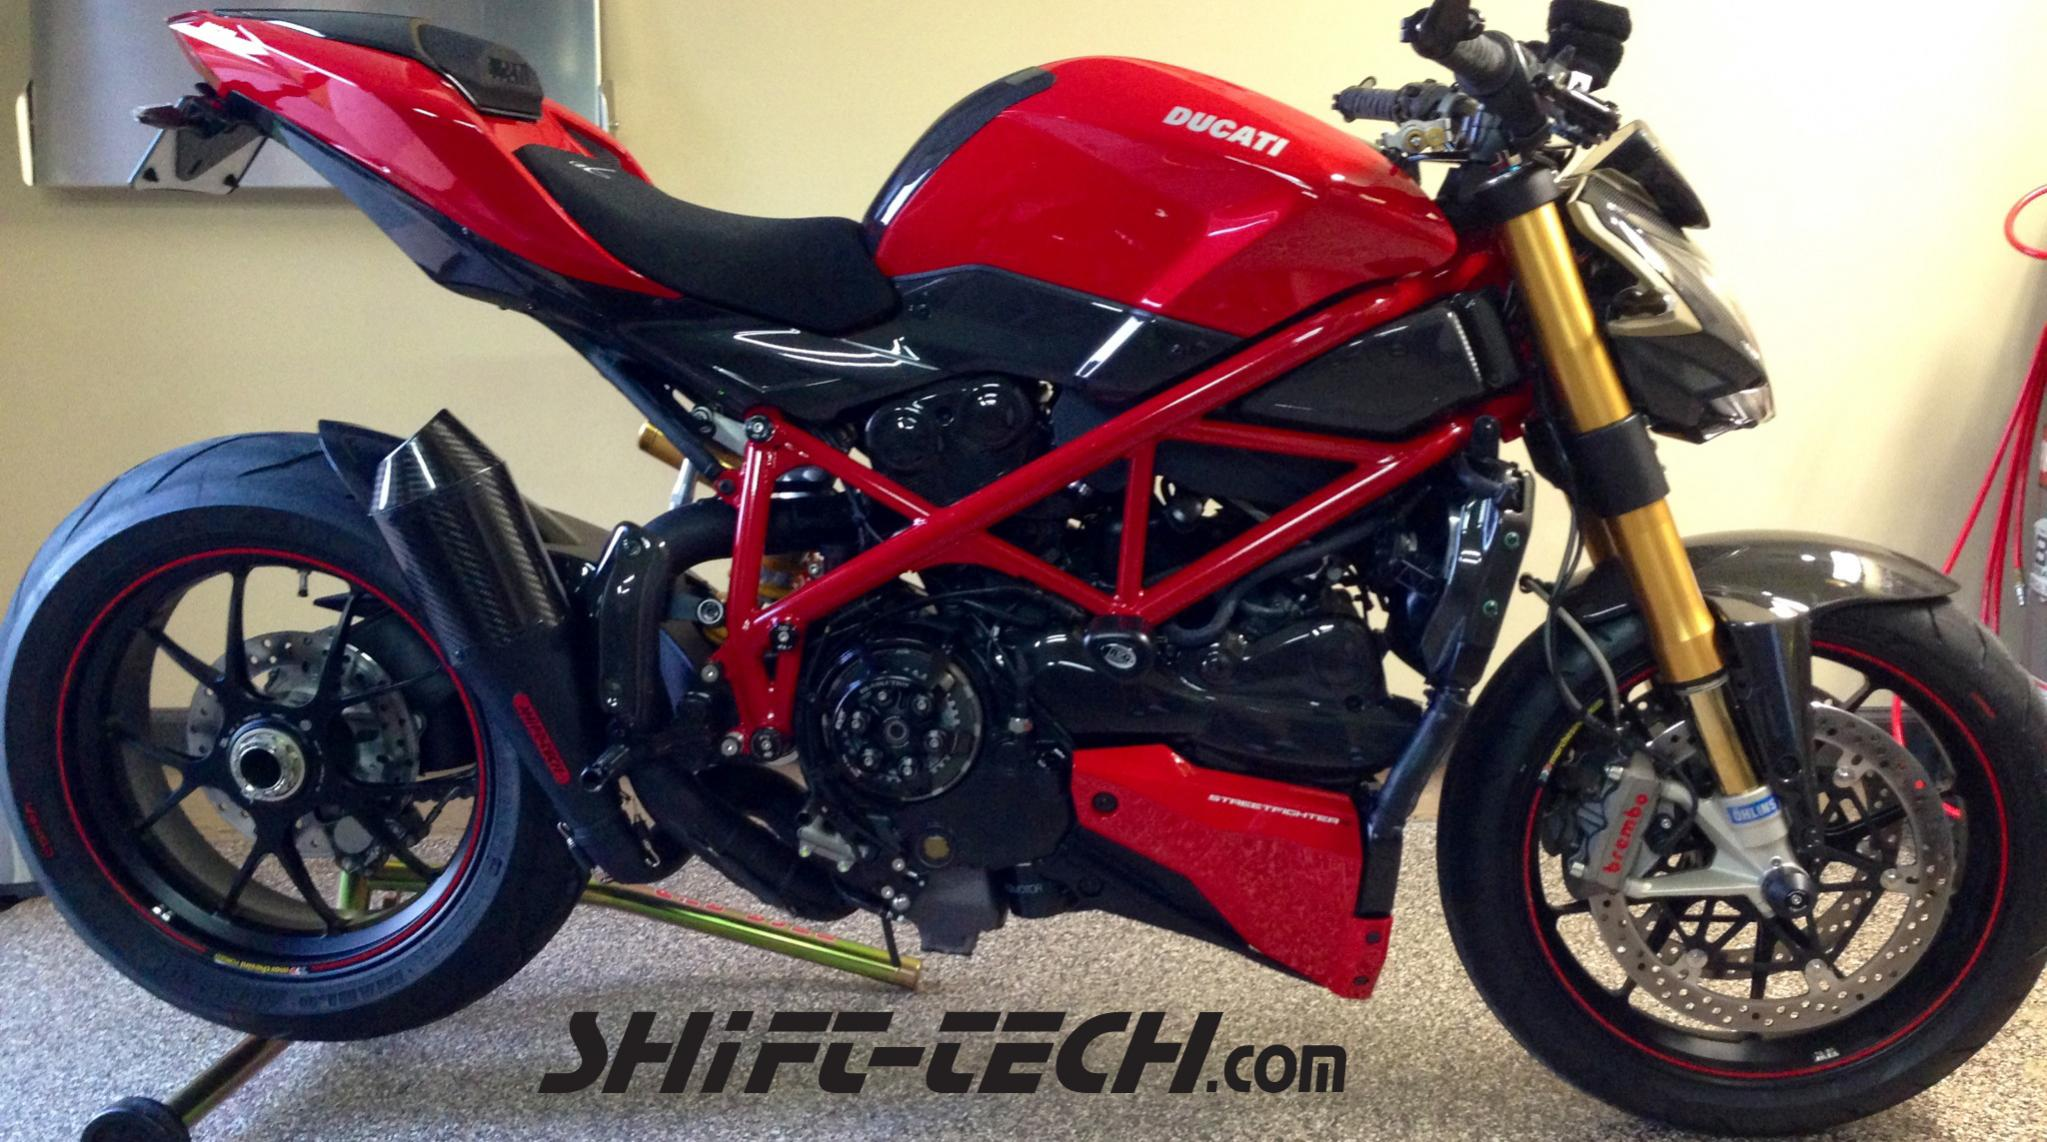 shift-tech exhaust - page 11 - ducati.ms - the ultimate ducati forum